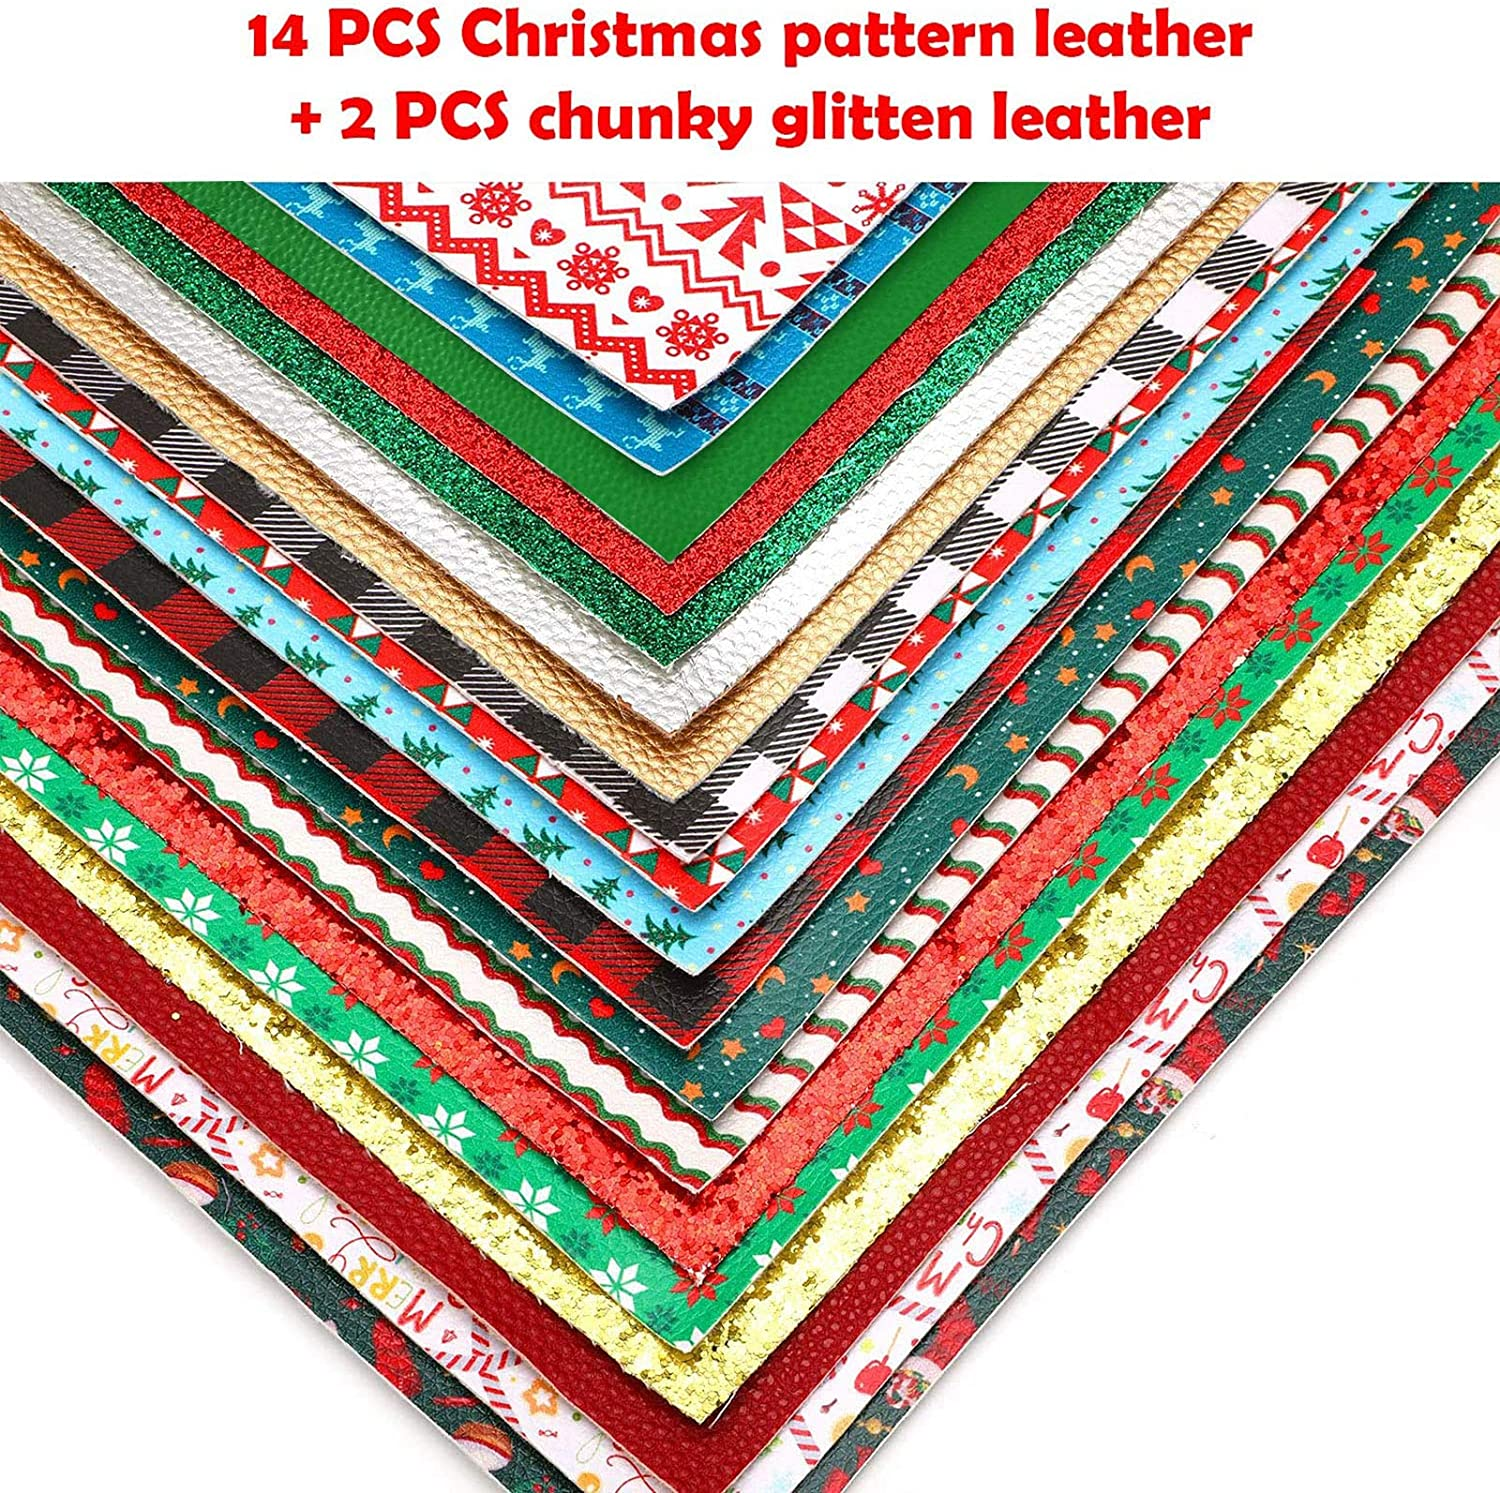 1 Christmas Ornaments Faux Leather Fabric Sheet Hair Bows Headbands Hair Clips Journal Covers Sanitizer Holders Keychains Jewelry D26-01